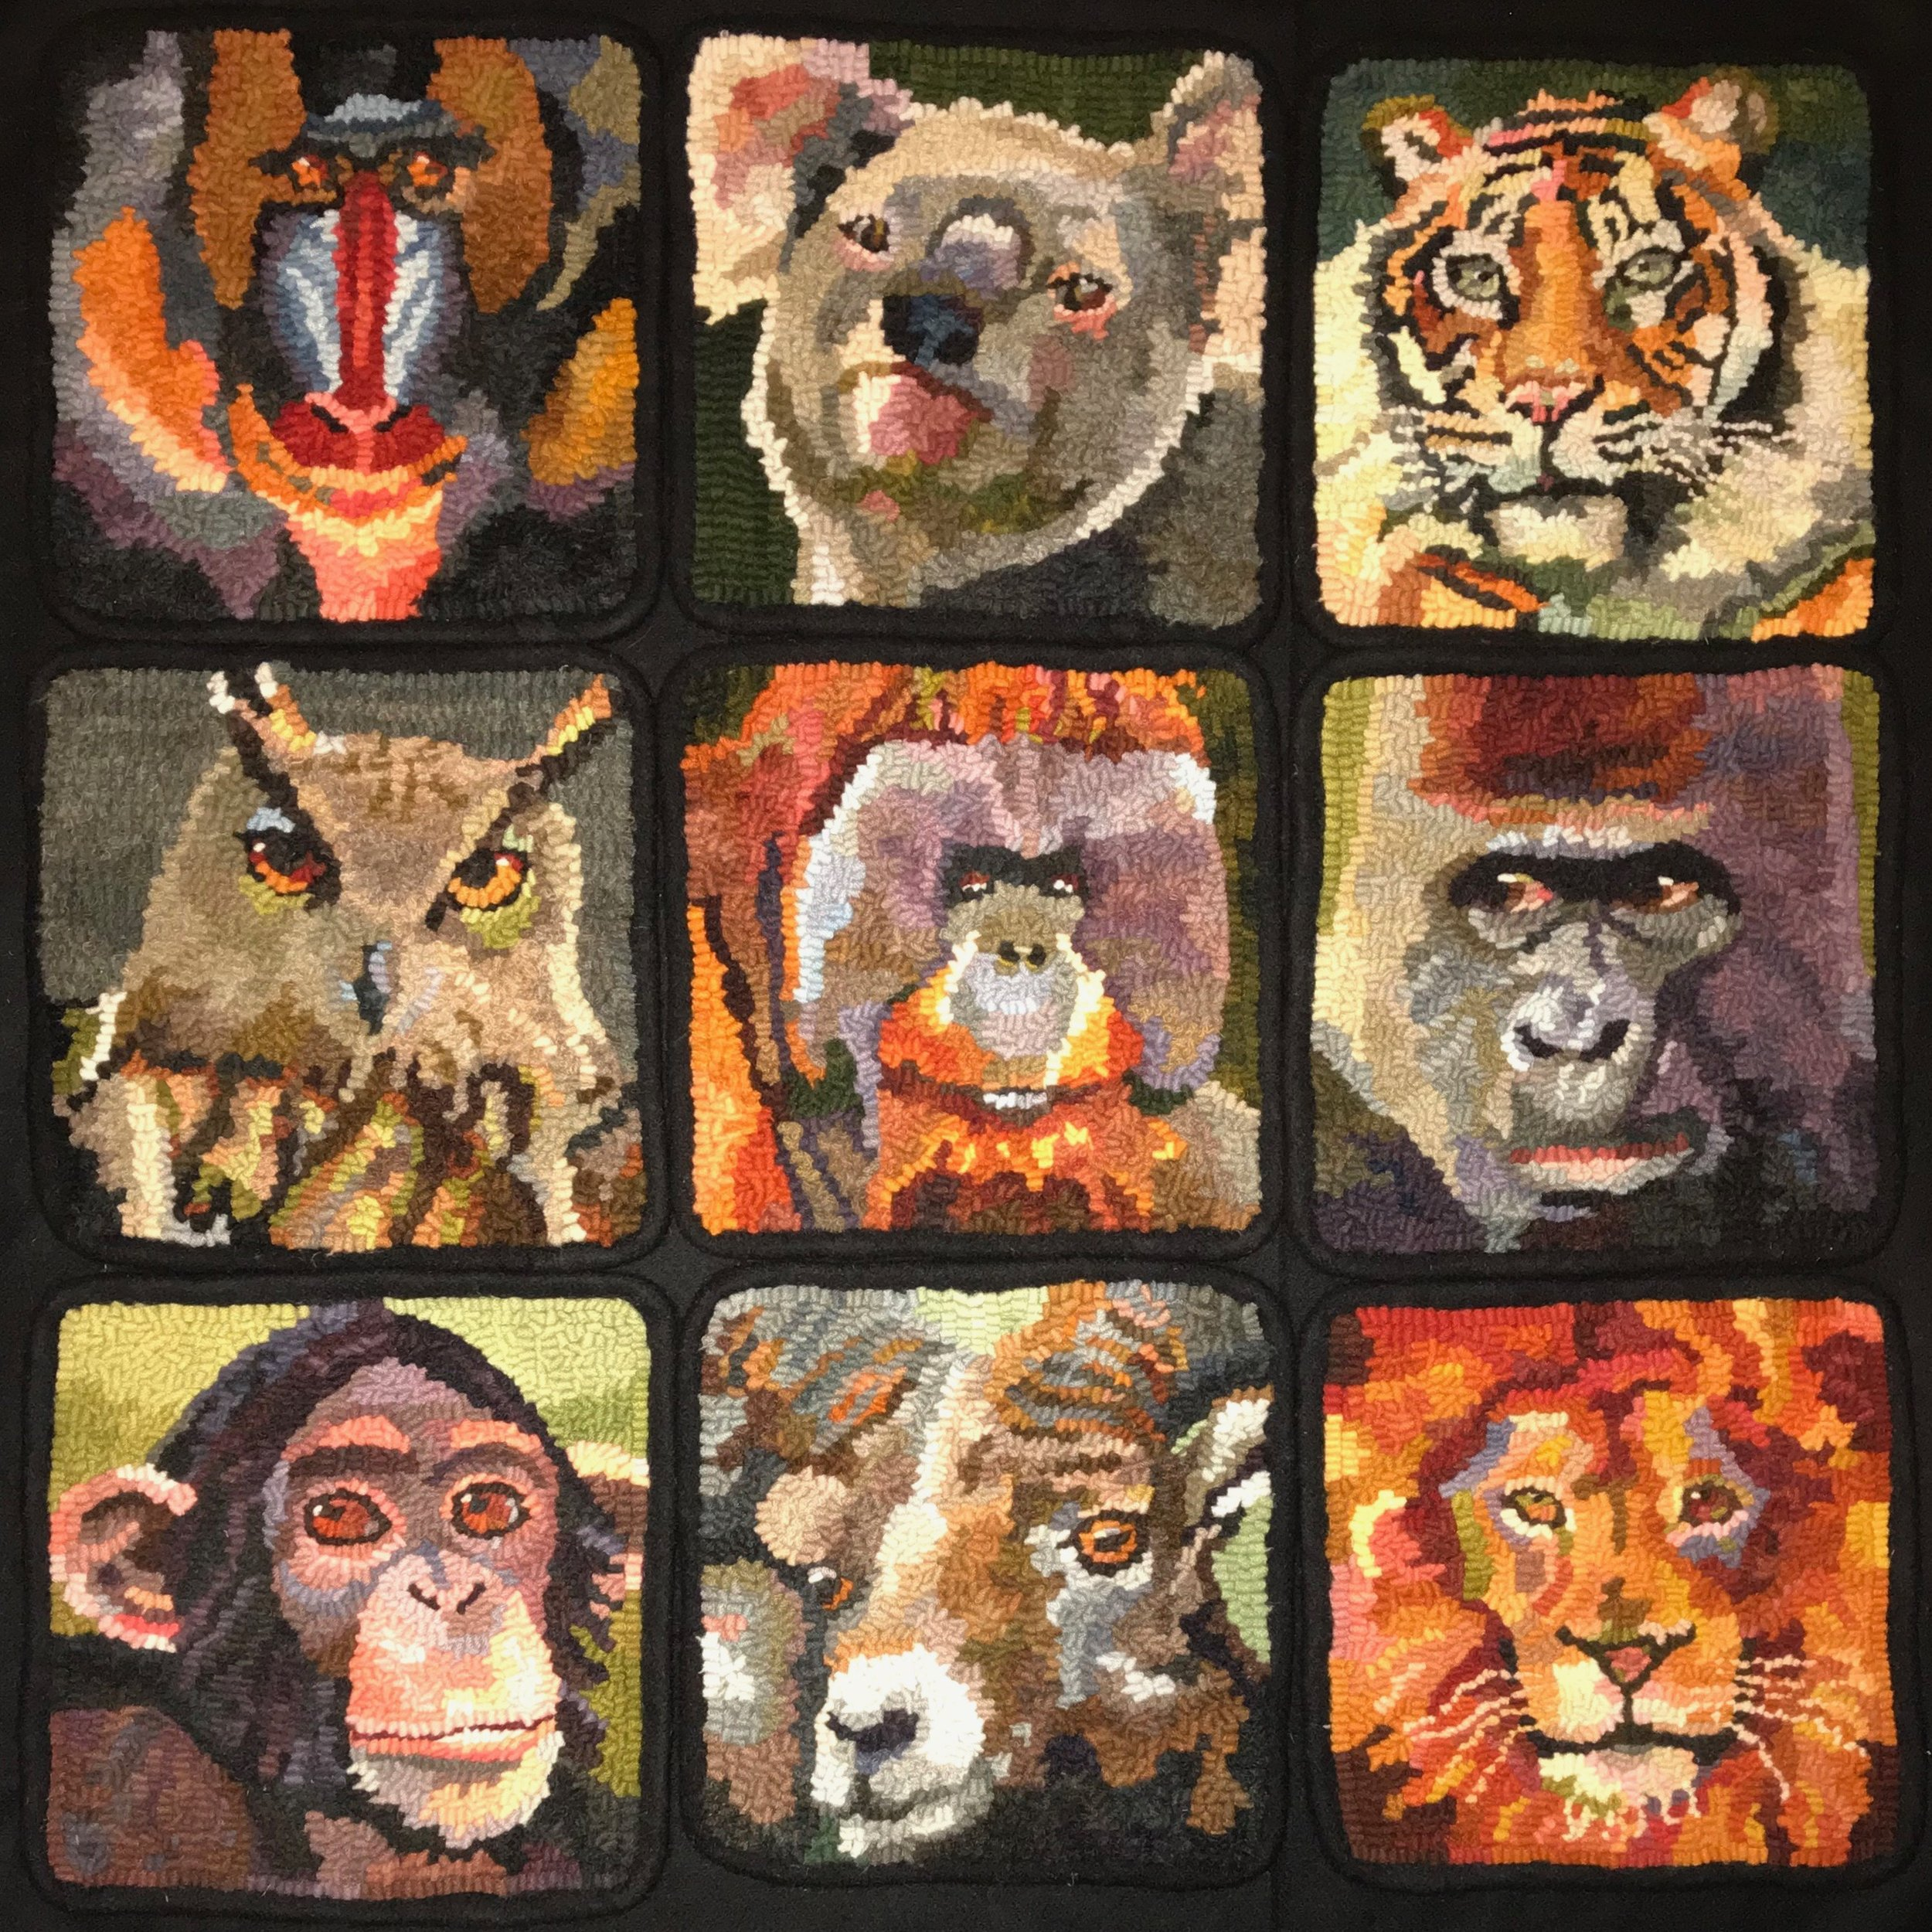 "Zoo Zone Originals 2018-19.  7"" x 7"" hooked mats on linen foundation.  Designed, dyed, and hooked by April D. DeConick"